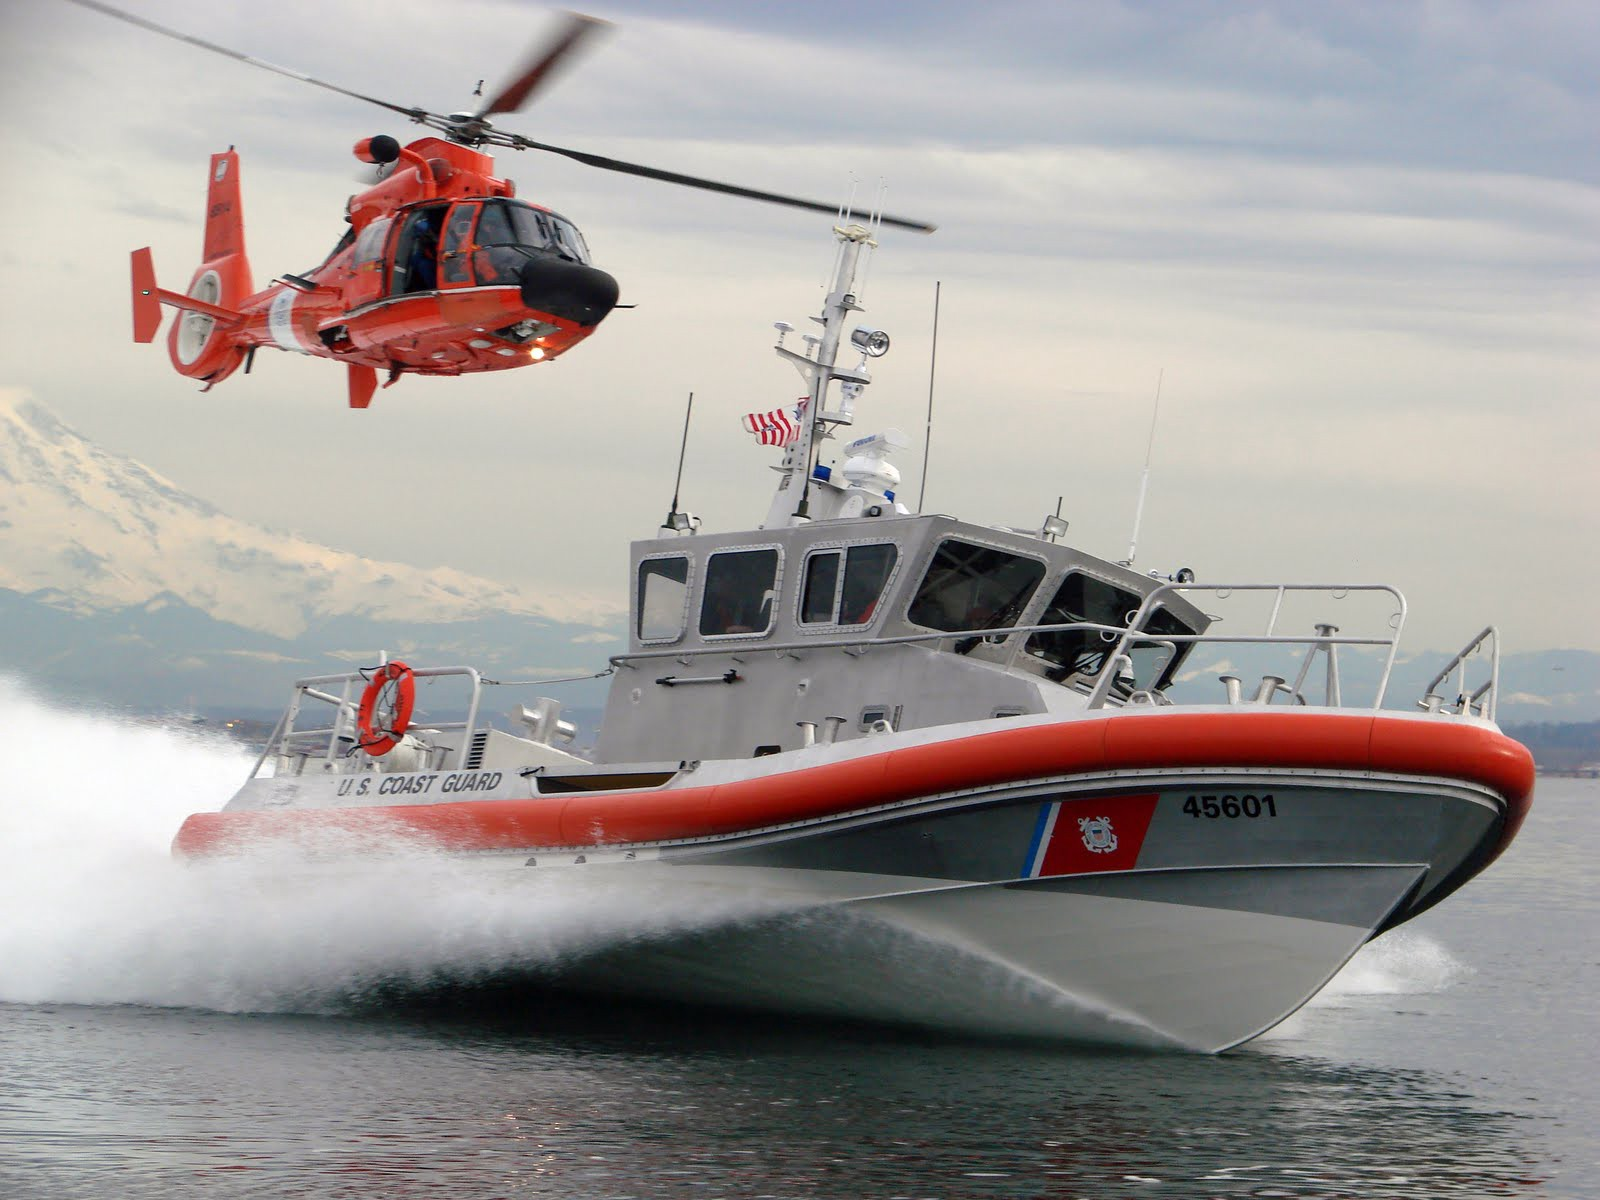 What is it like to be in the coast guard